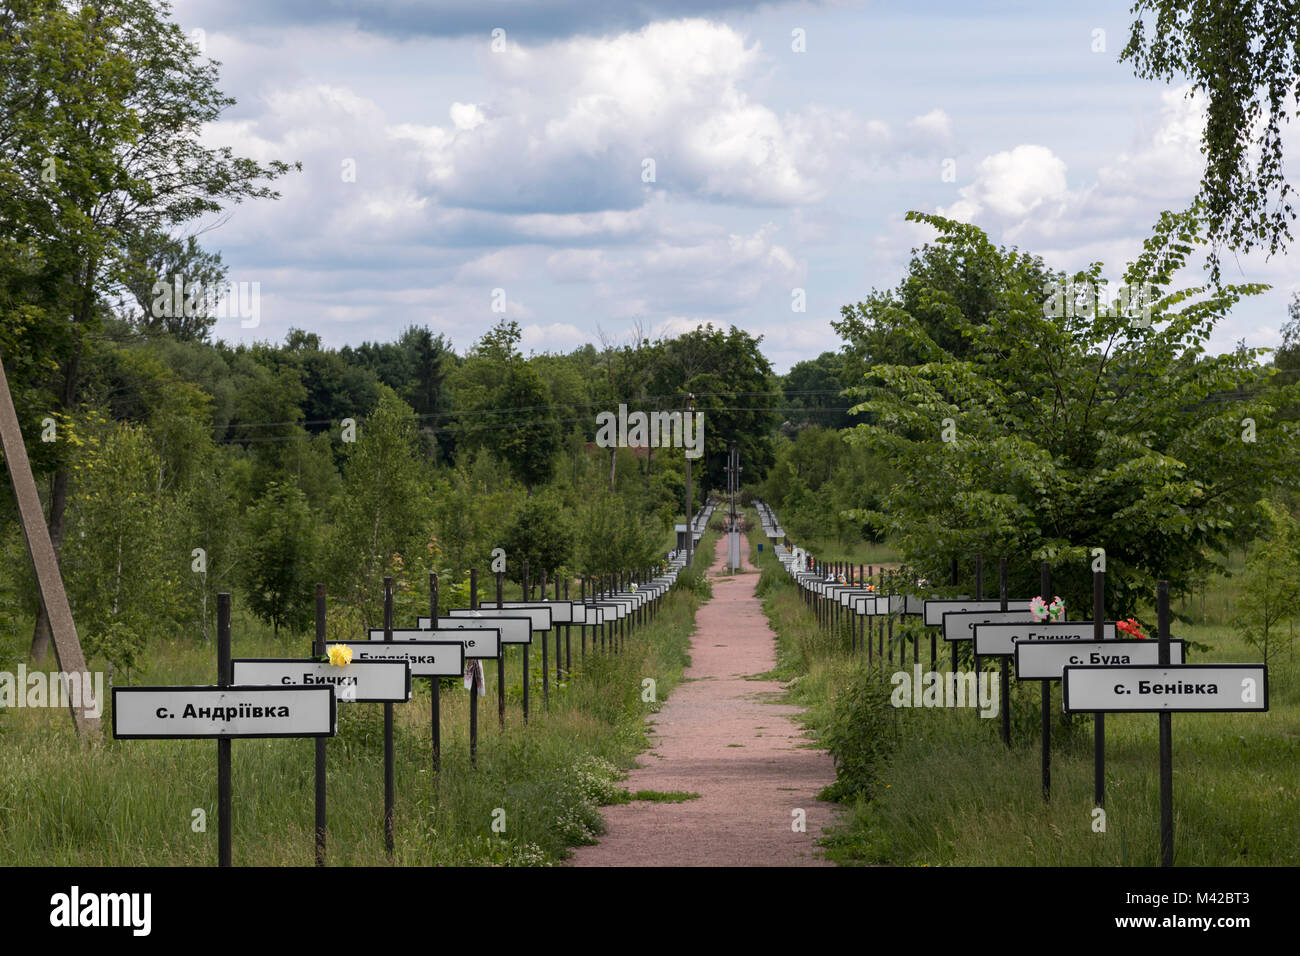 Crosses bearing the names of the villages evacuated after the Chernobyl nuclear accident in 1986 Stock Photo